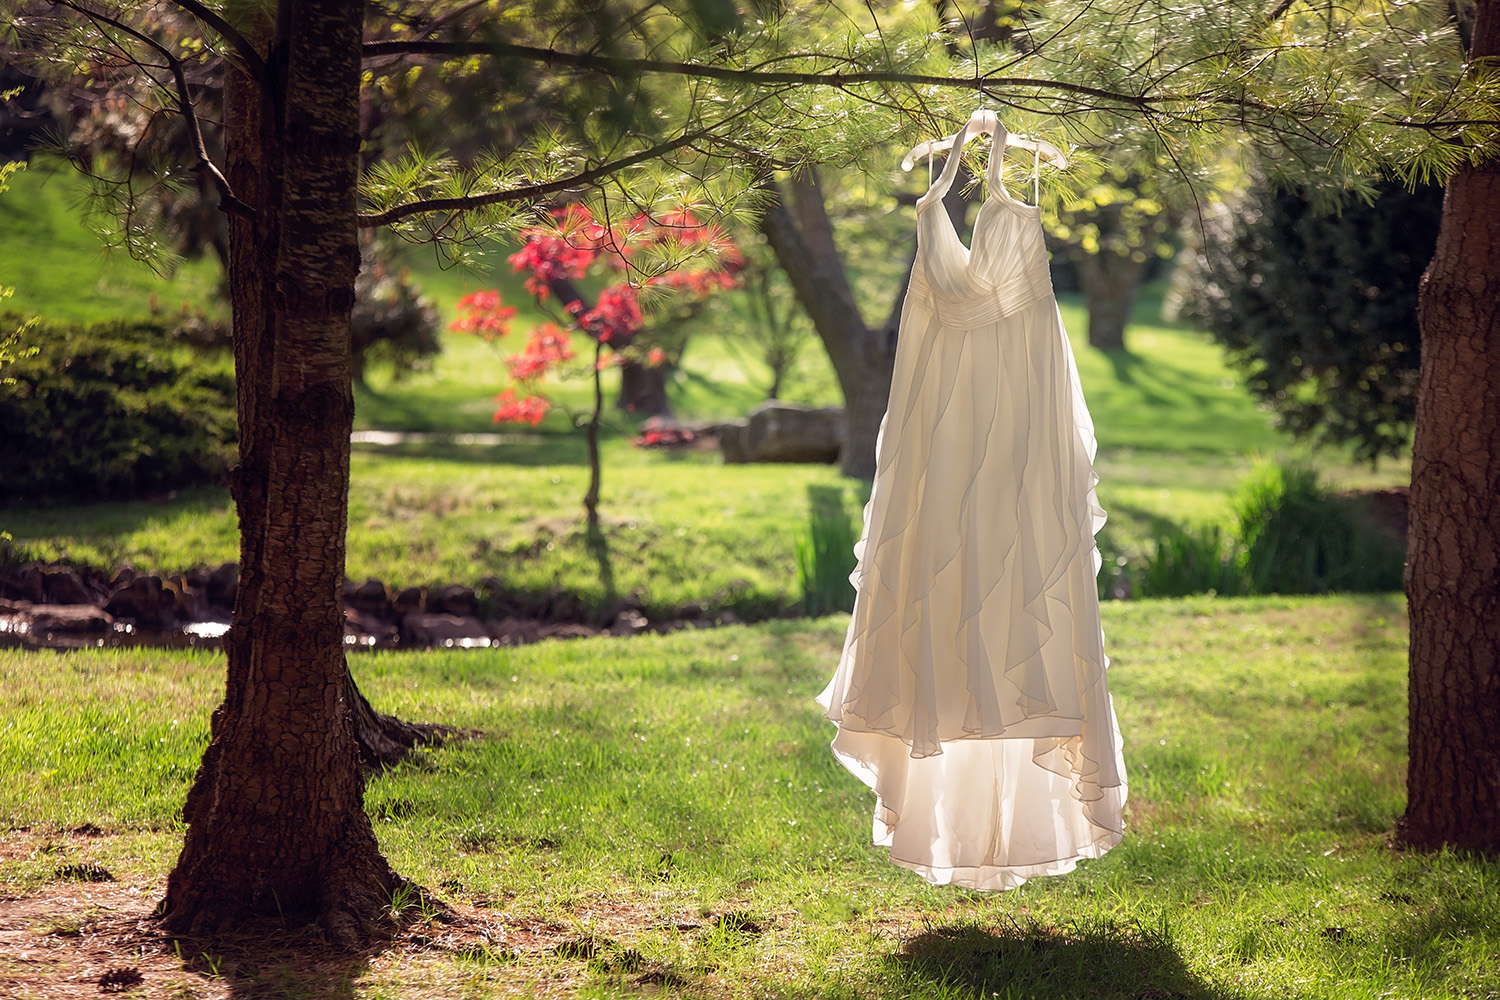 Wedding dress hangs in the golden sun at the Mizumoto Japanese Stroll Garden in Springfield, Missouri - a beautiful wedding venue for Spring!